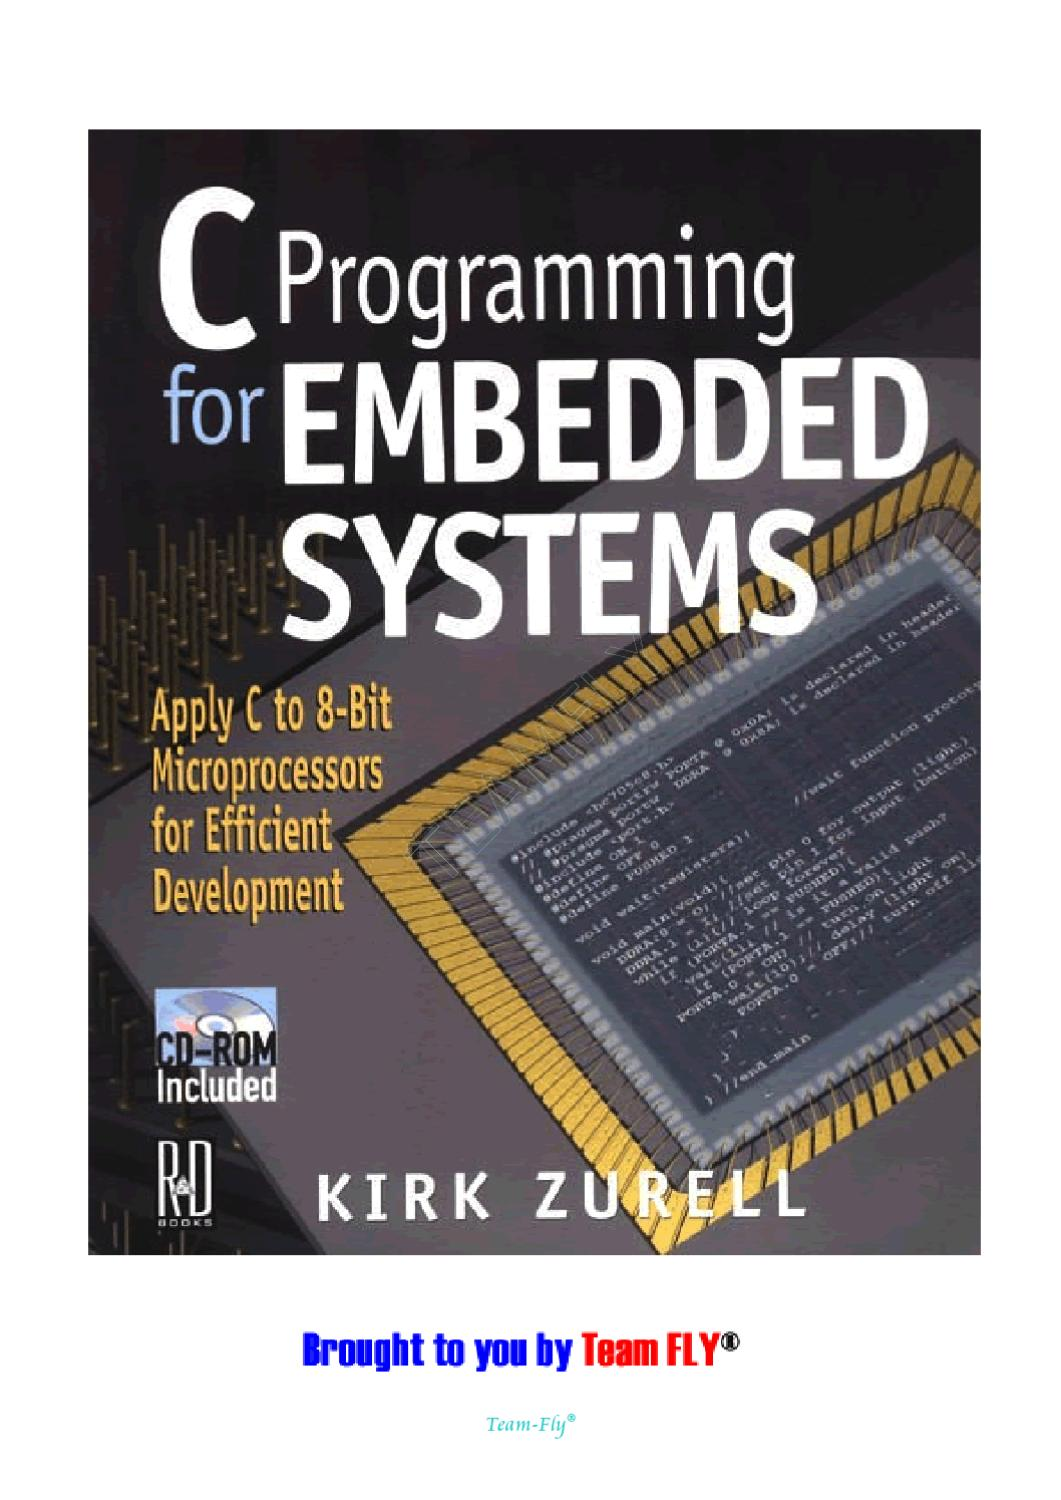 7266138-C-Programming-for-Embedded-Systems by Jahnoi